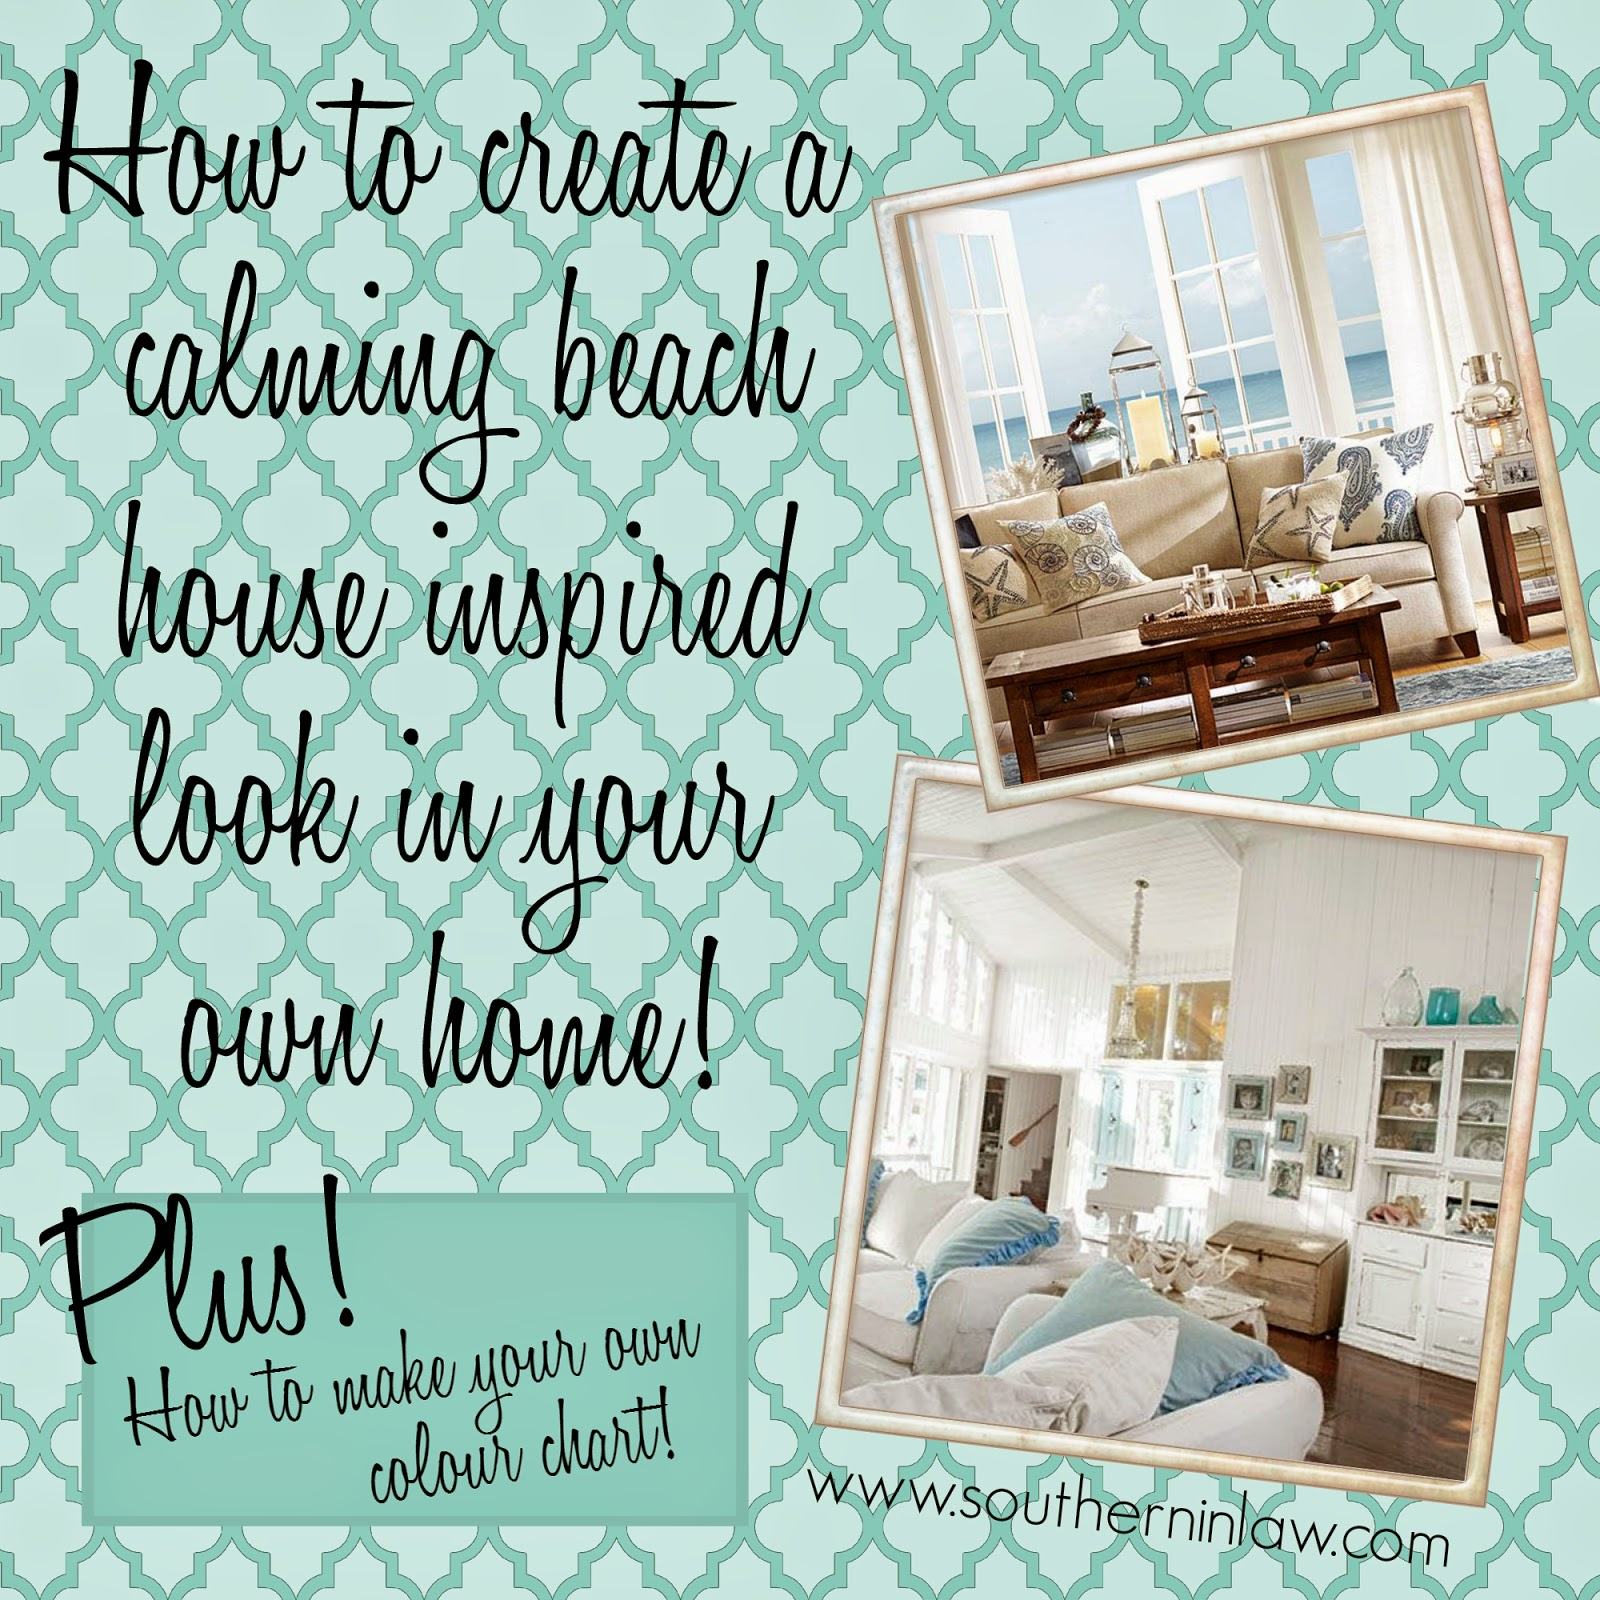 How to create a Shabby Chic Beach House Style Home - Beach Inspired Interior Design